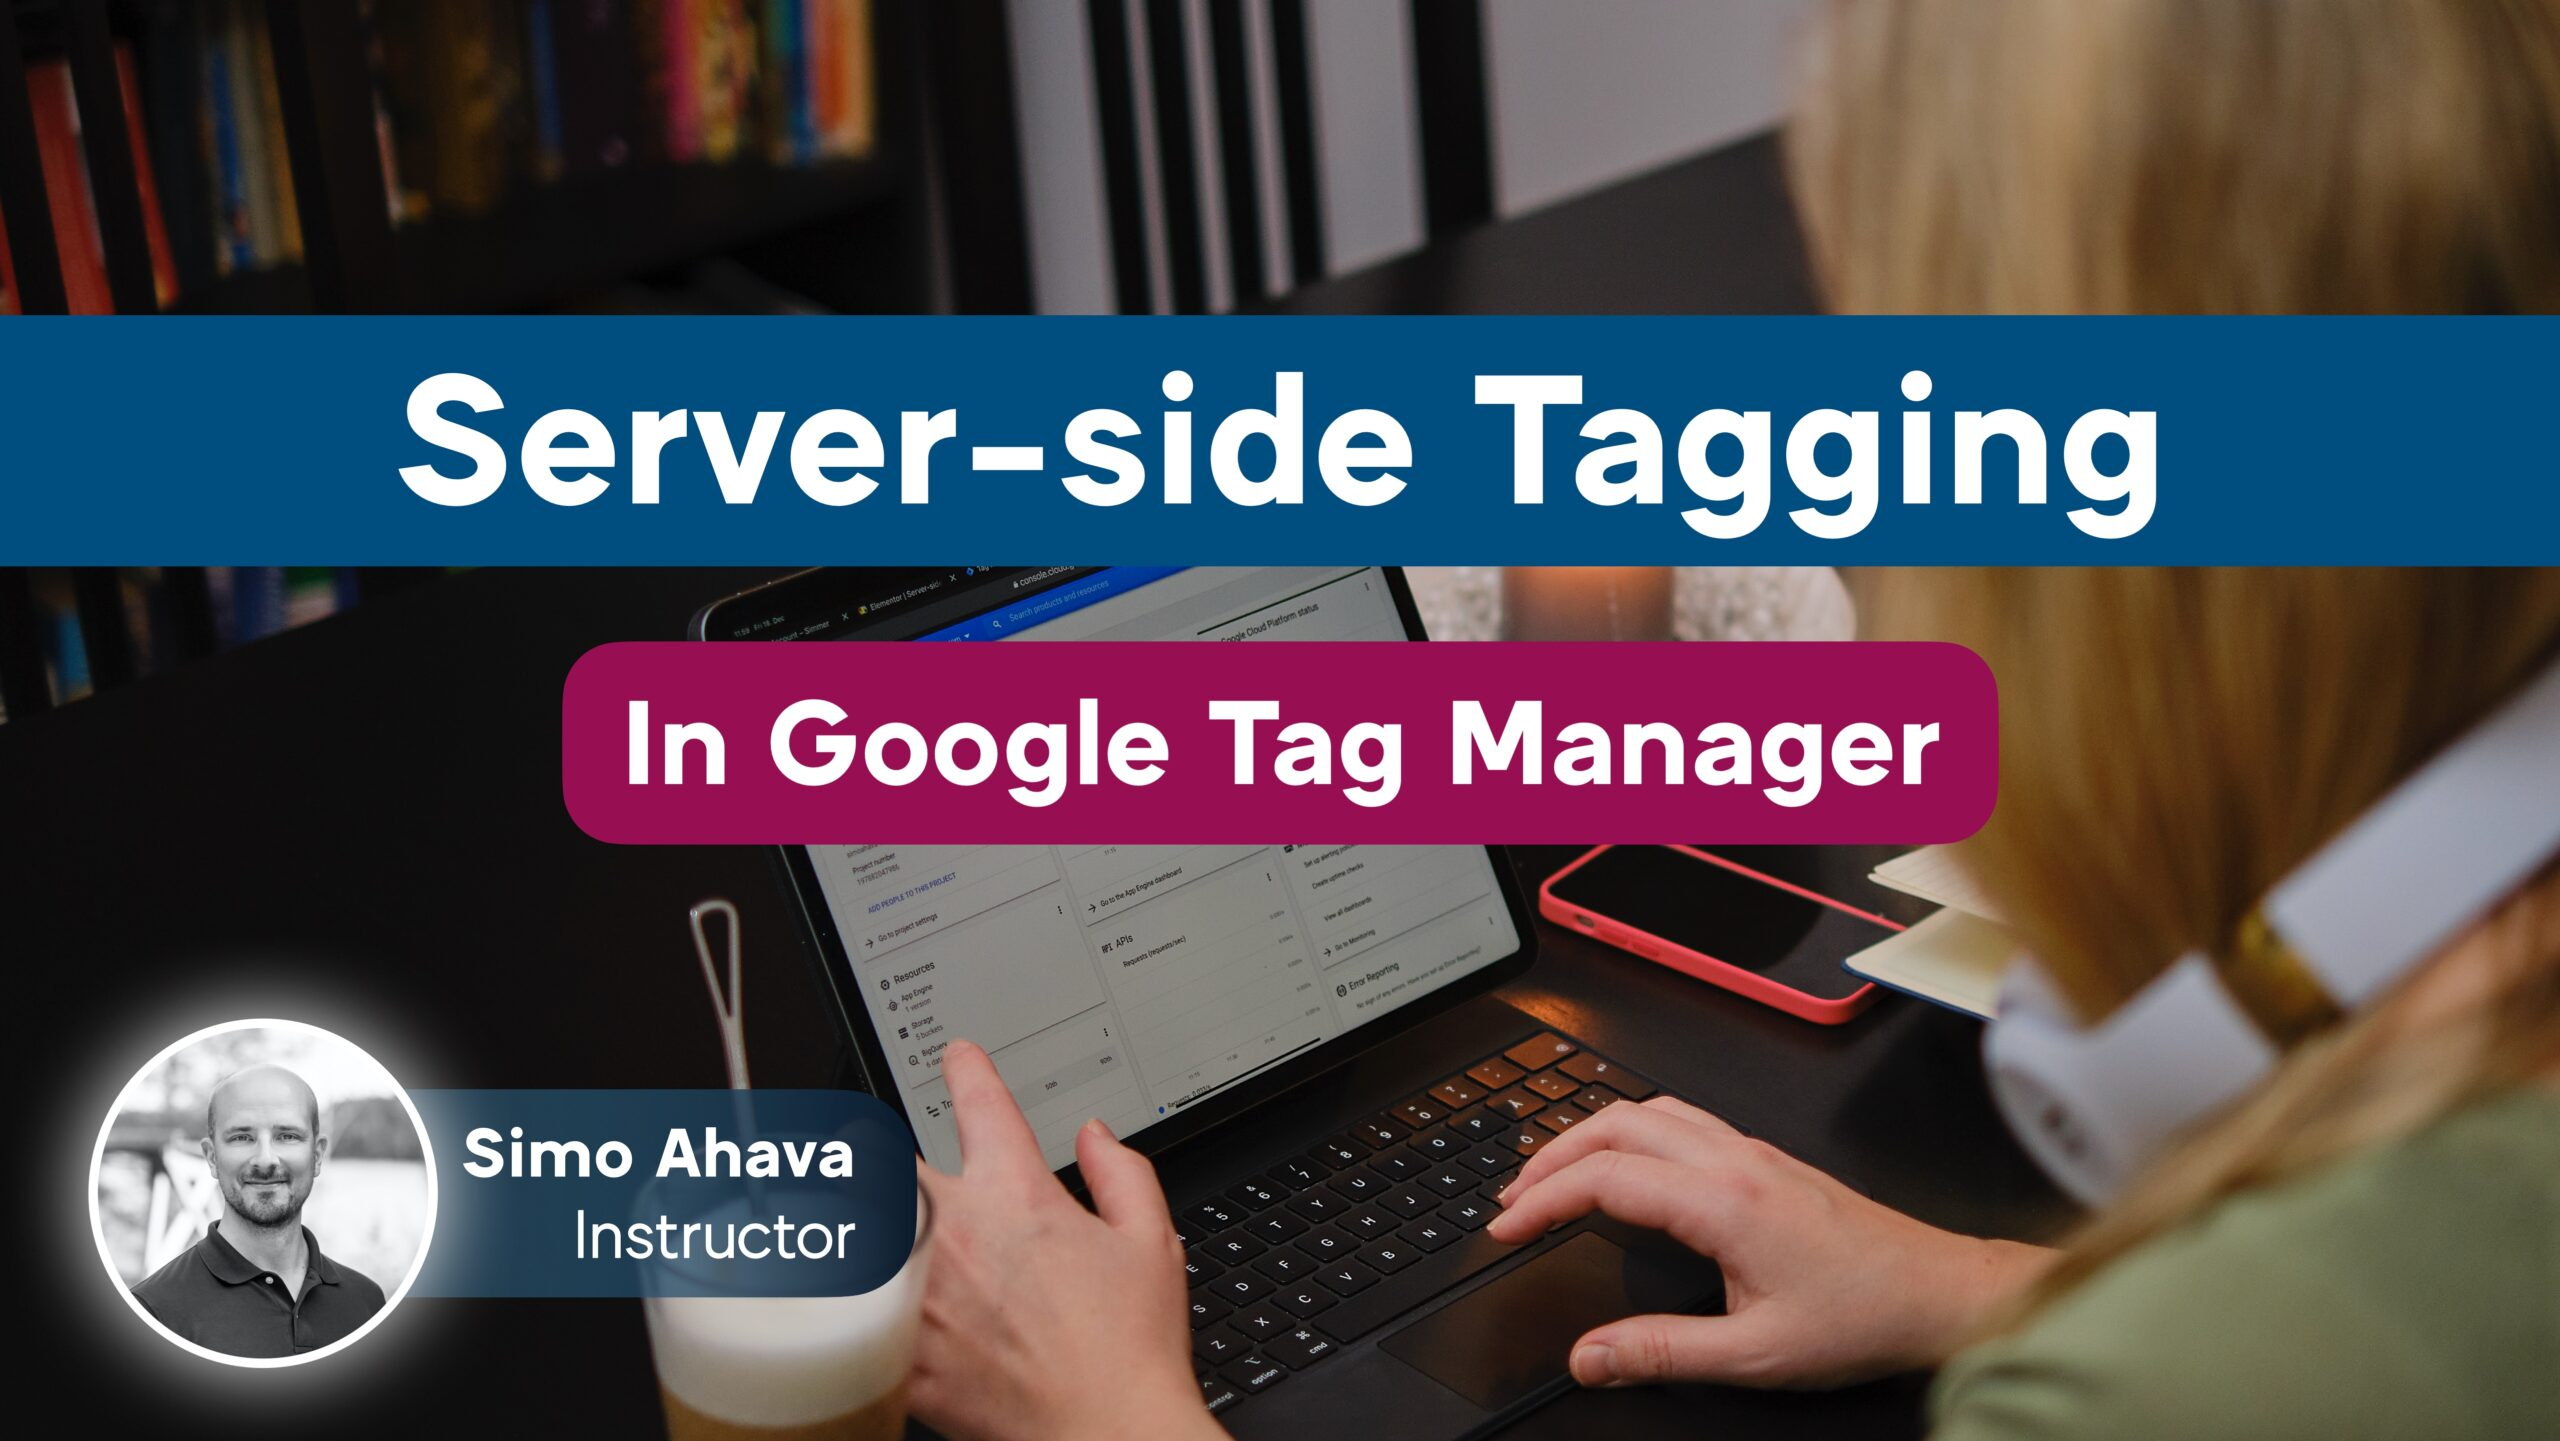 Server-side Tagging In Google Tag Manager